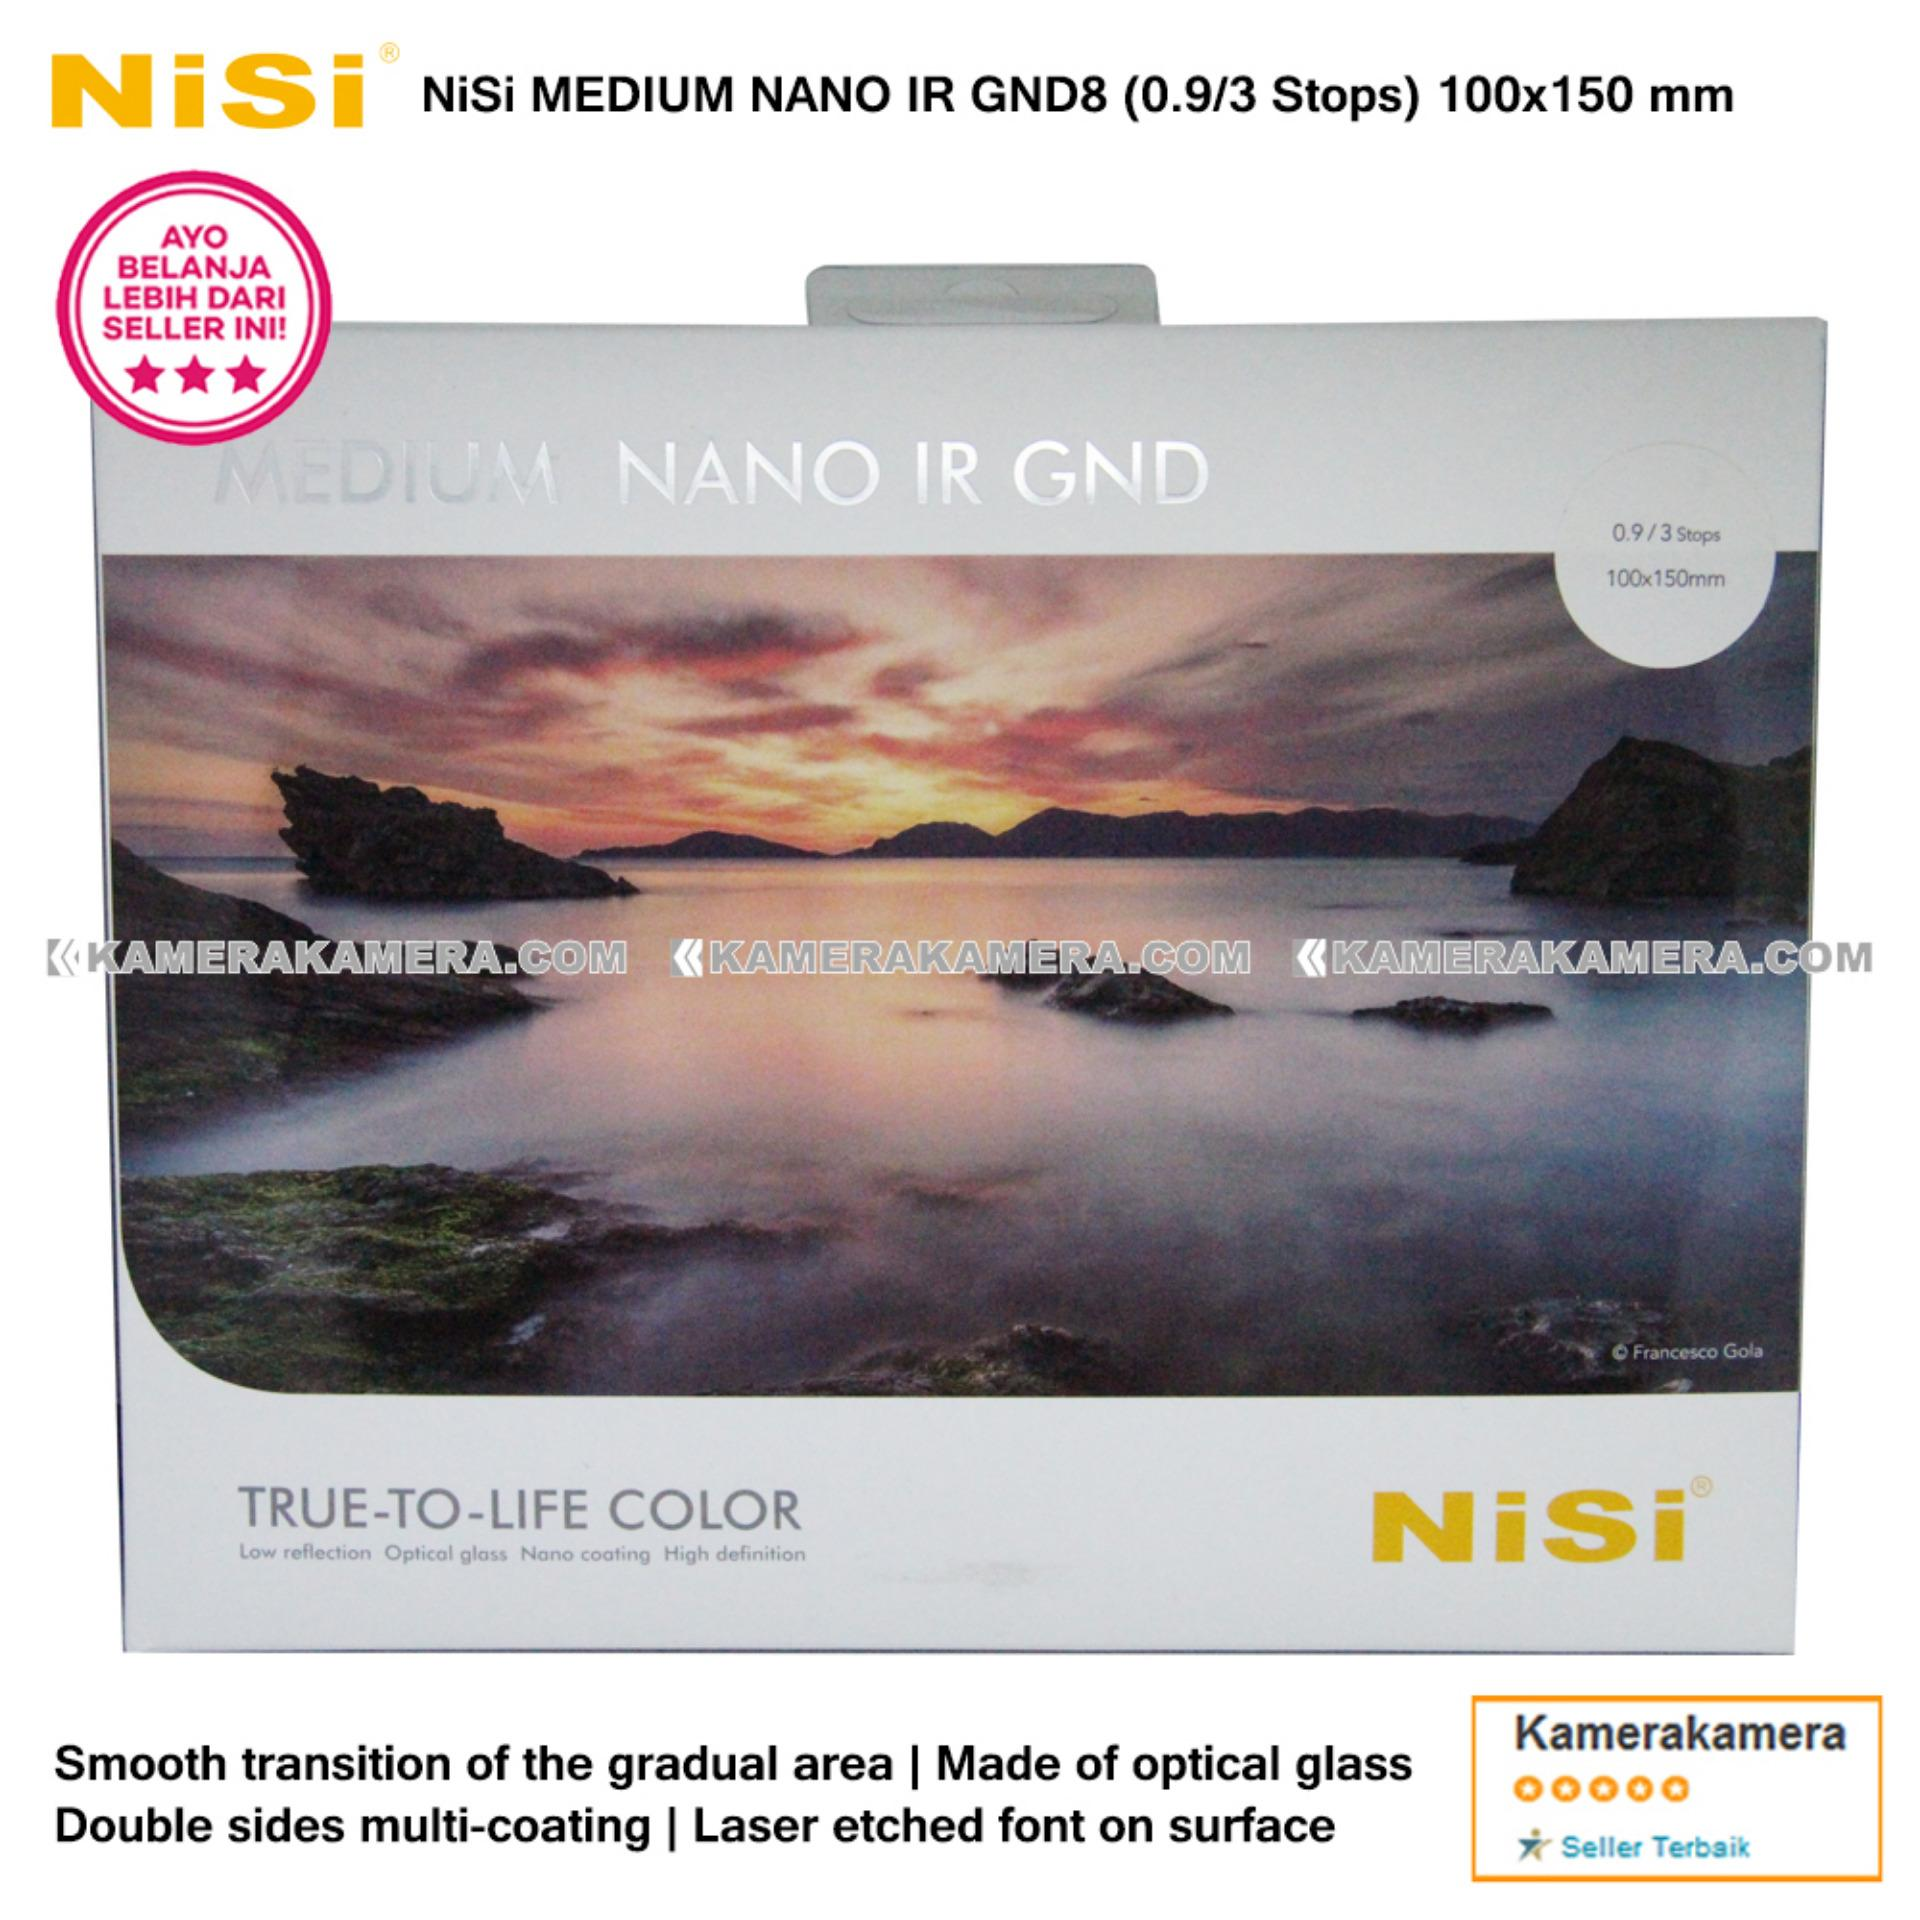 NiSi Square Filter Medium Nano IR GND8 (0.9 /3 Stops) 100x150mm Original for DSLR / Mirrorless Camera Canon Nikon Sony Fujifilm Panasonic